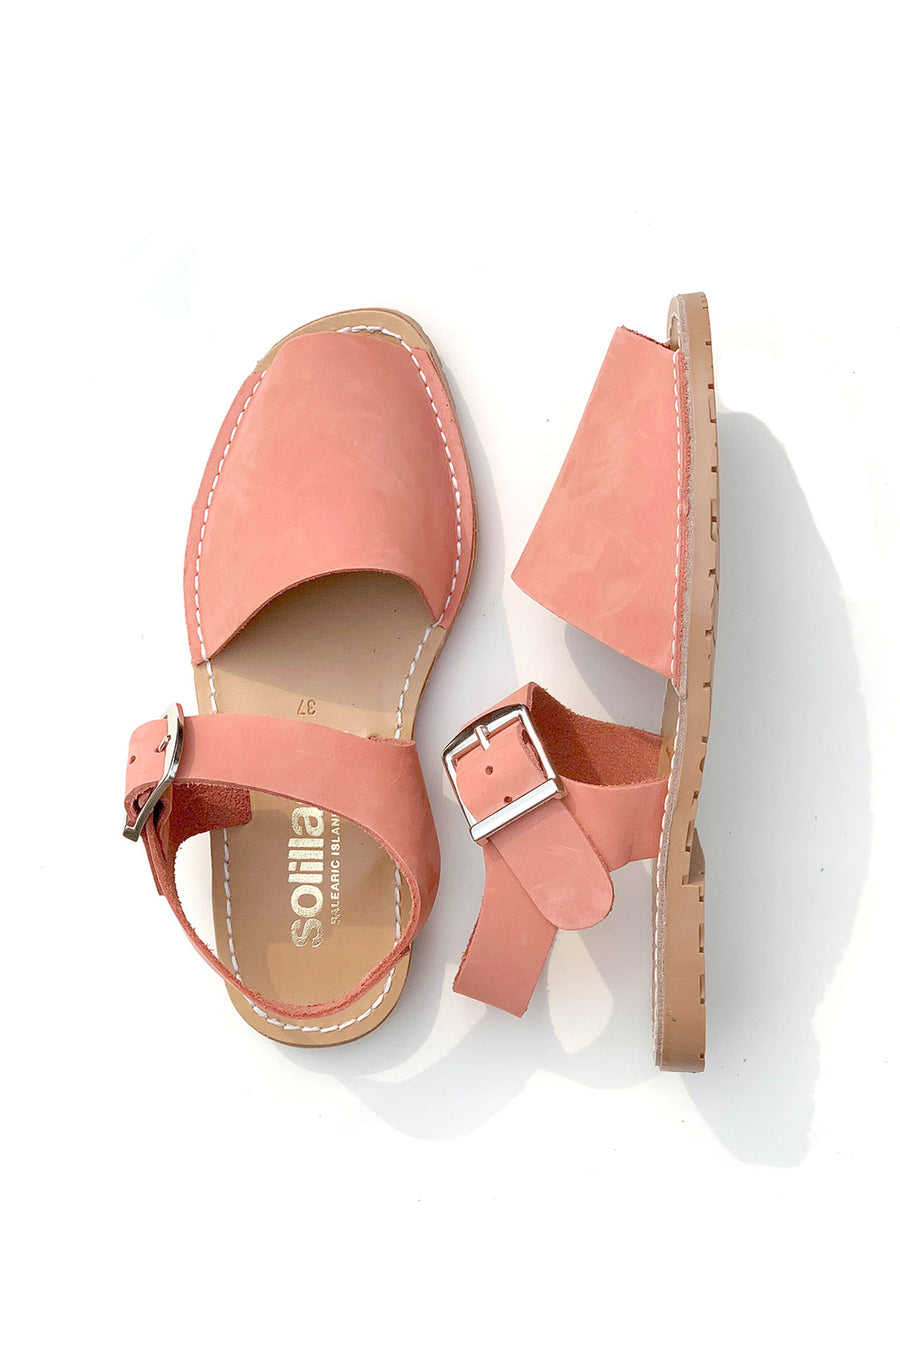 Coral Pesca - Coral Nubuck Leather Buckle Sandal